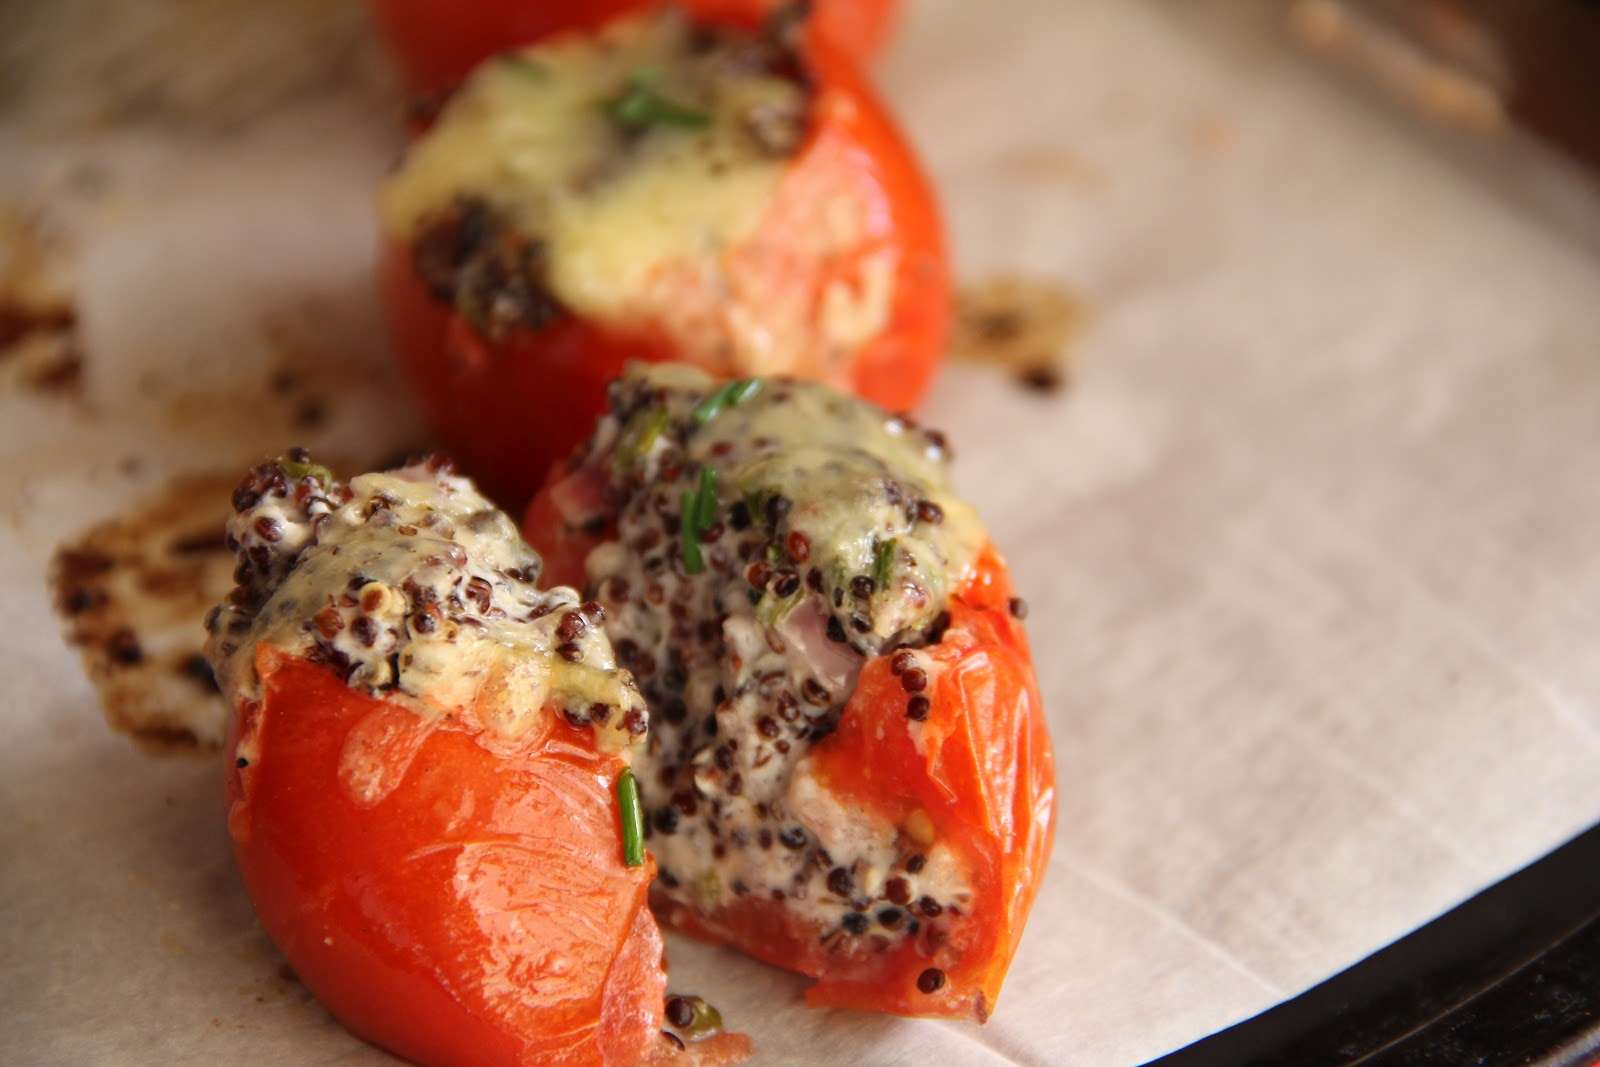 bona food: Quinoa & Goats Cheese Stuffed Tomatoes